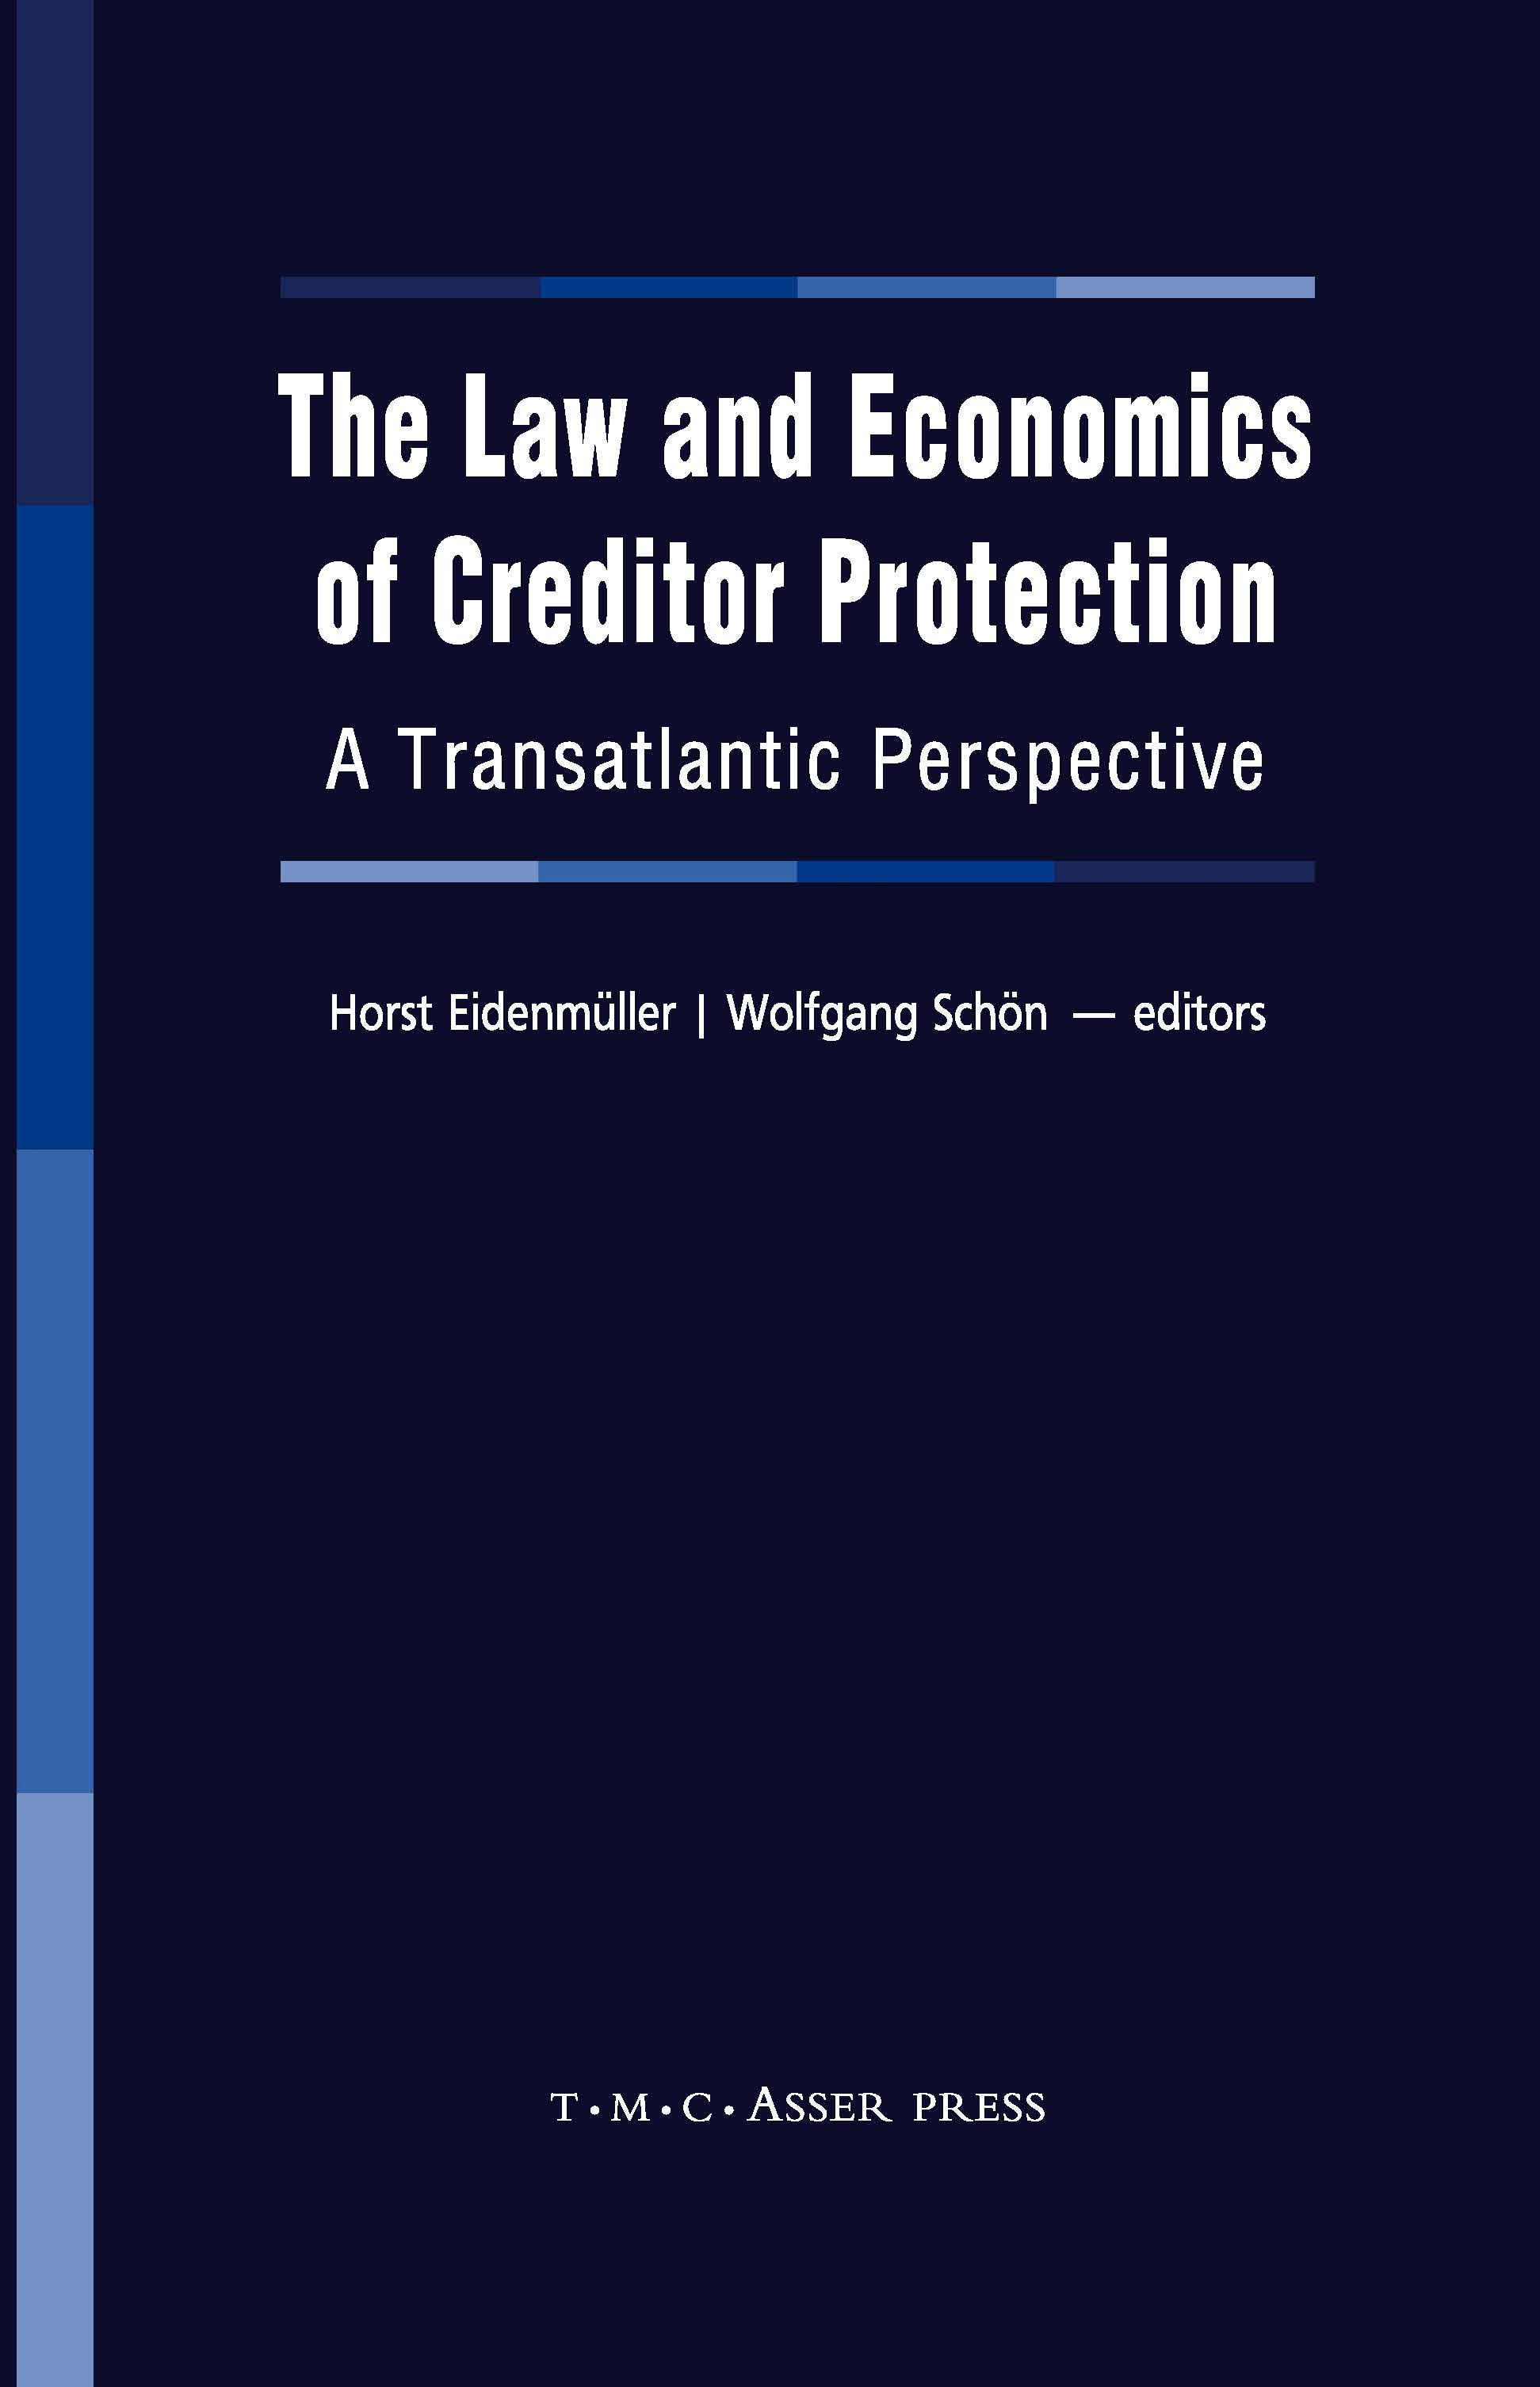 The Law and Economics of Creditor Protection - A Transatlantic Perspective